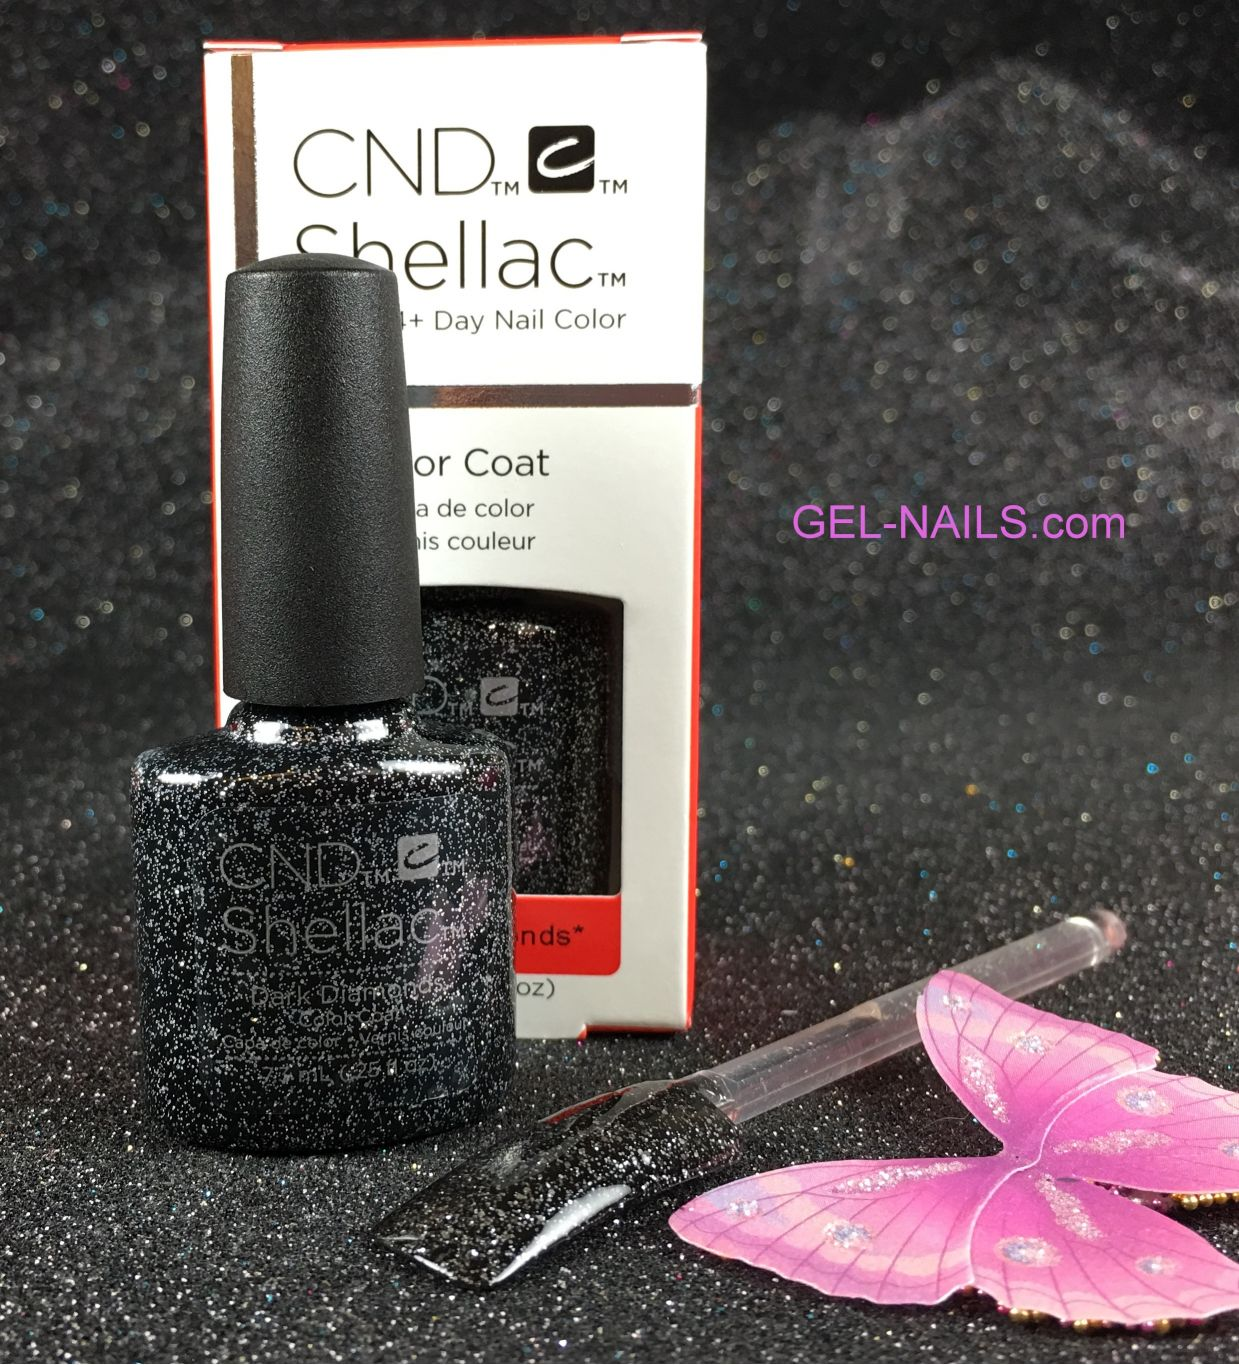 CND Shellac Dark Diamonds 91258 Gel Color Coat l Gel-nails.com